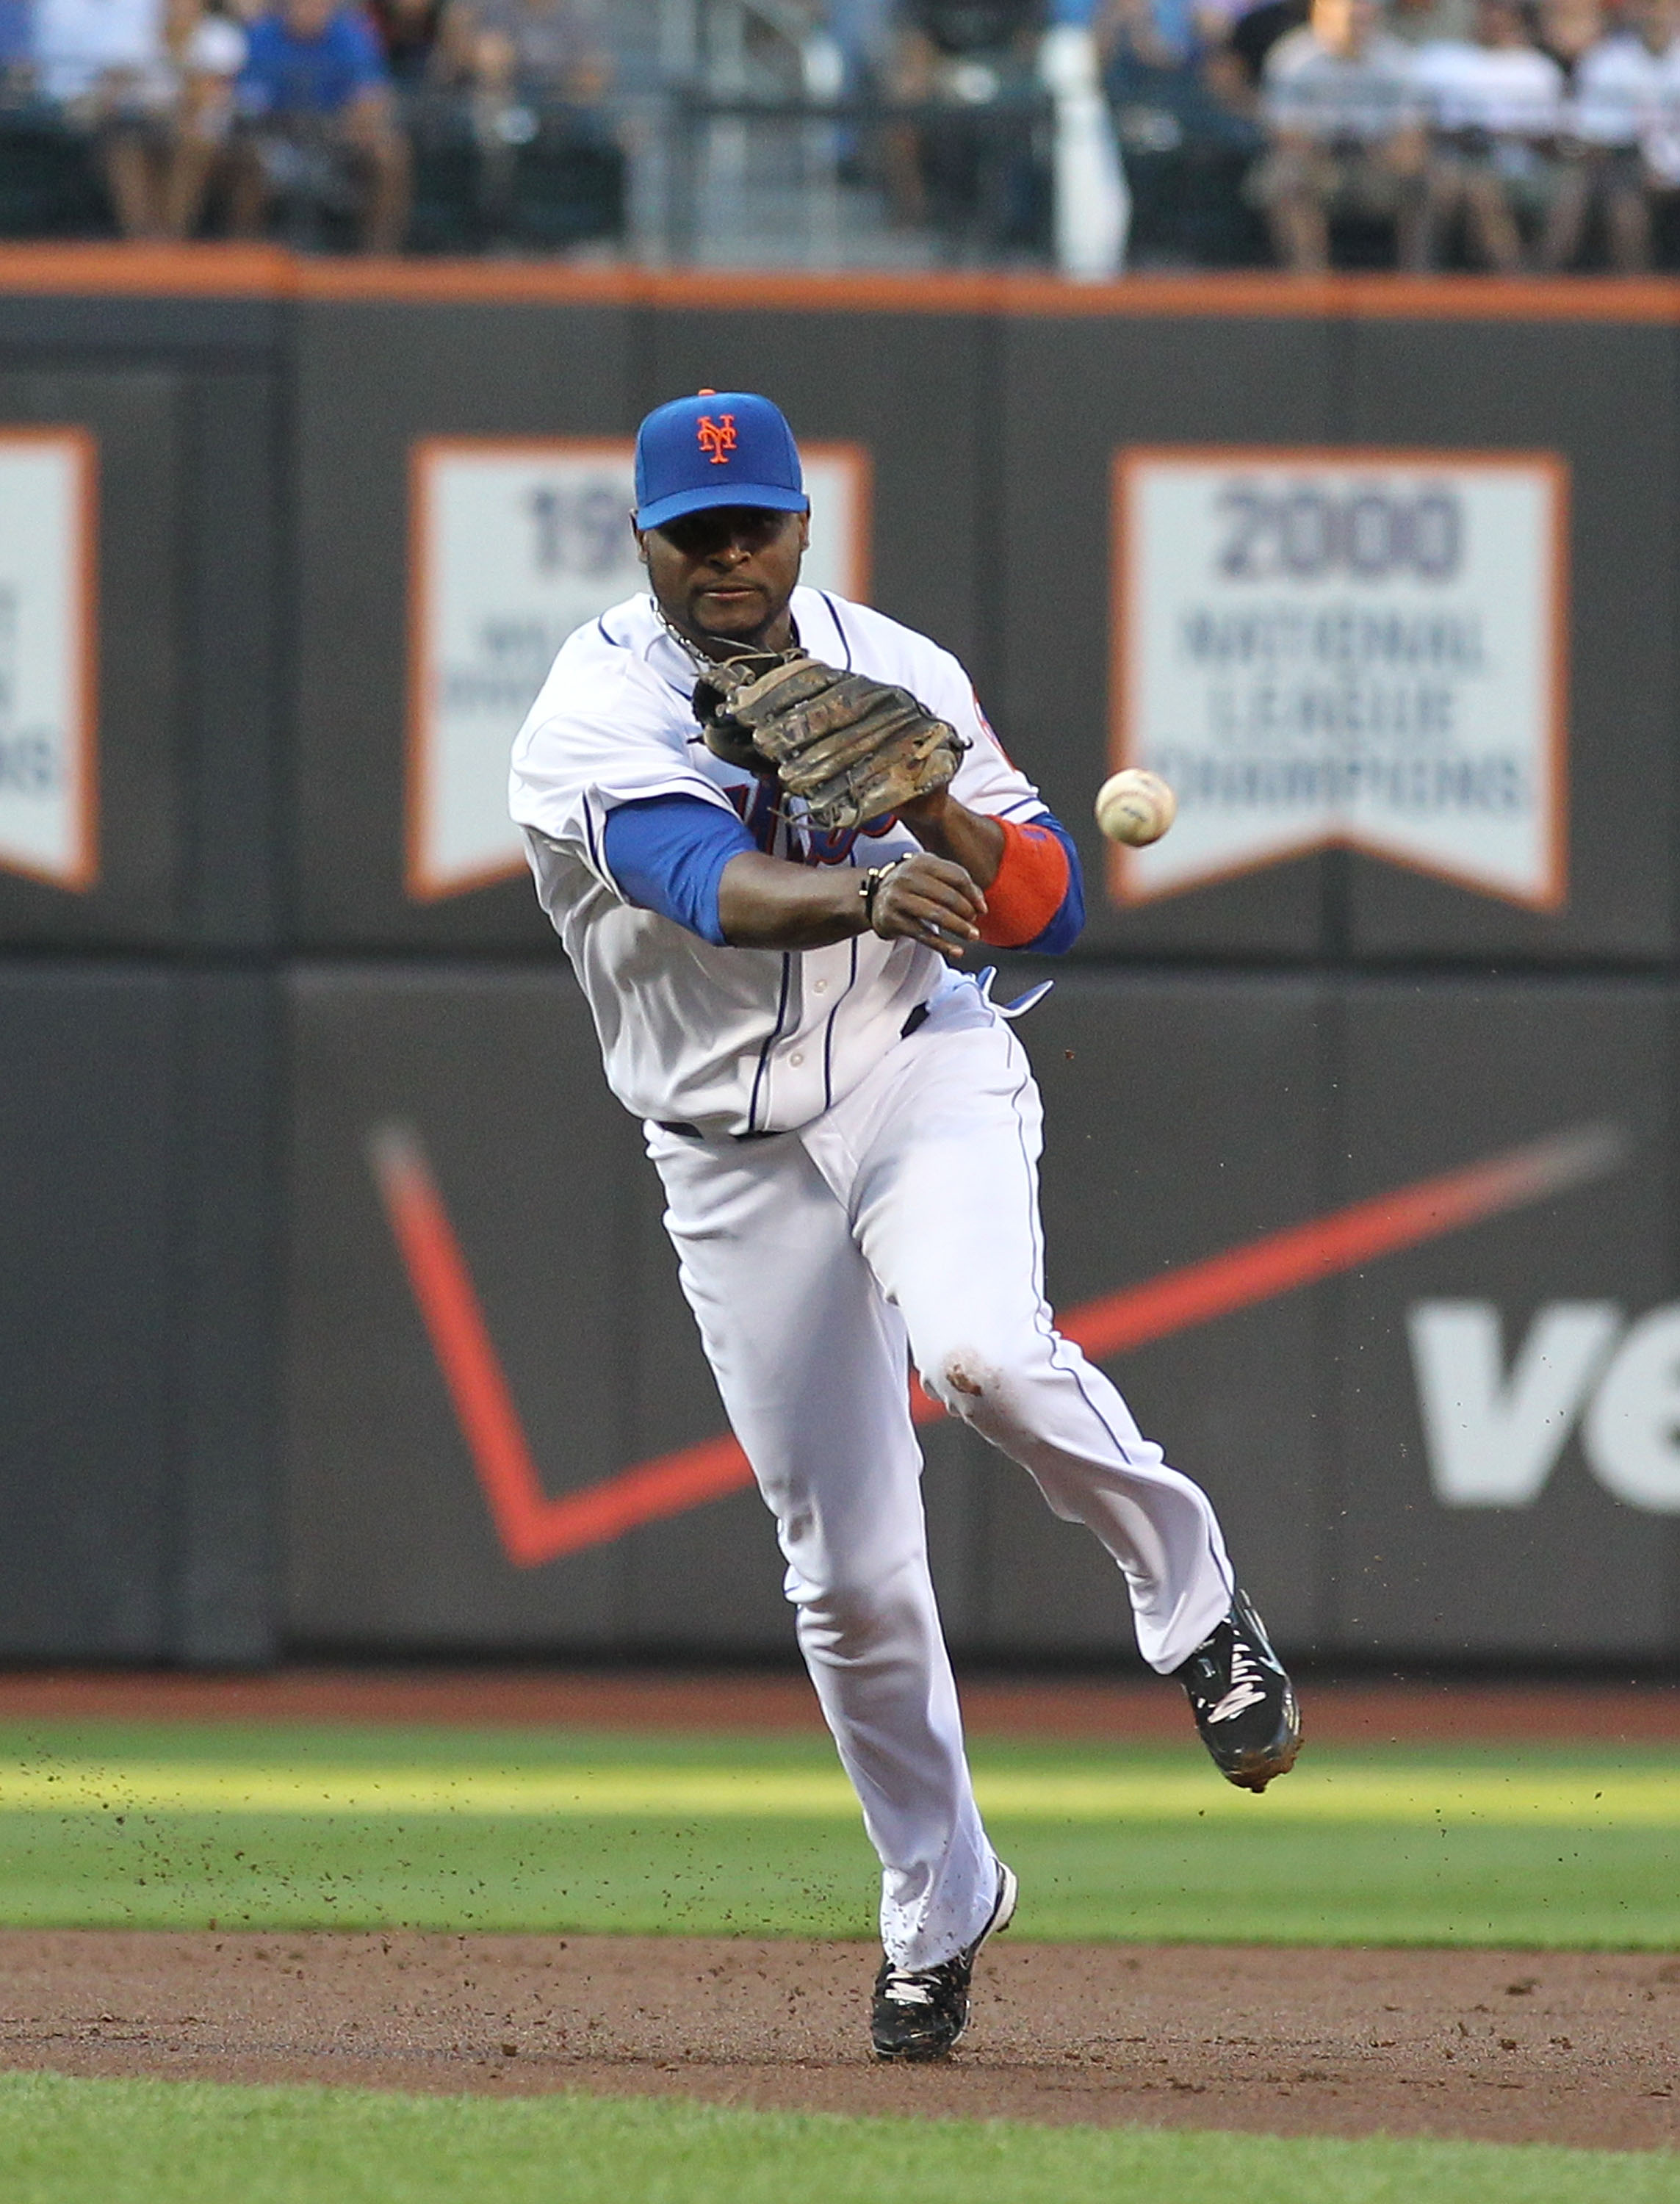 NEW YORK - JULY 27:  Luis Castillo #1 of the New York Mets in action against the St. Louis Cardinals during their game on July 27, 2010 at Citi Field in the Flushing neighborhood of the Queens borough of New York City.  (Photo by Al Bello/Getty Images)